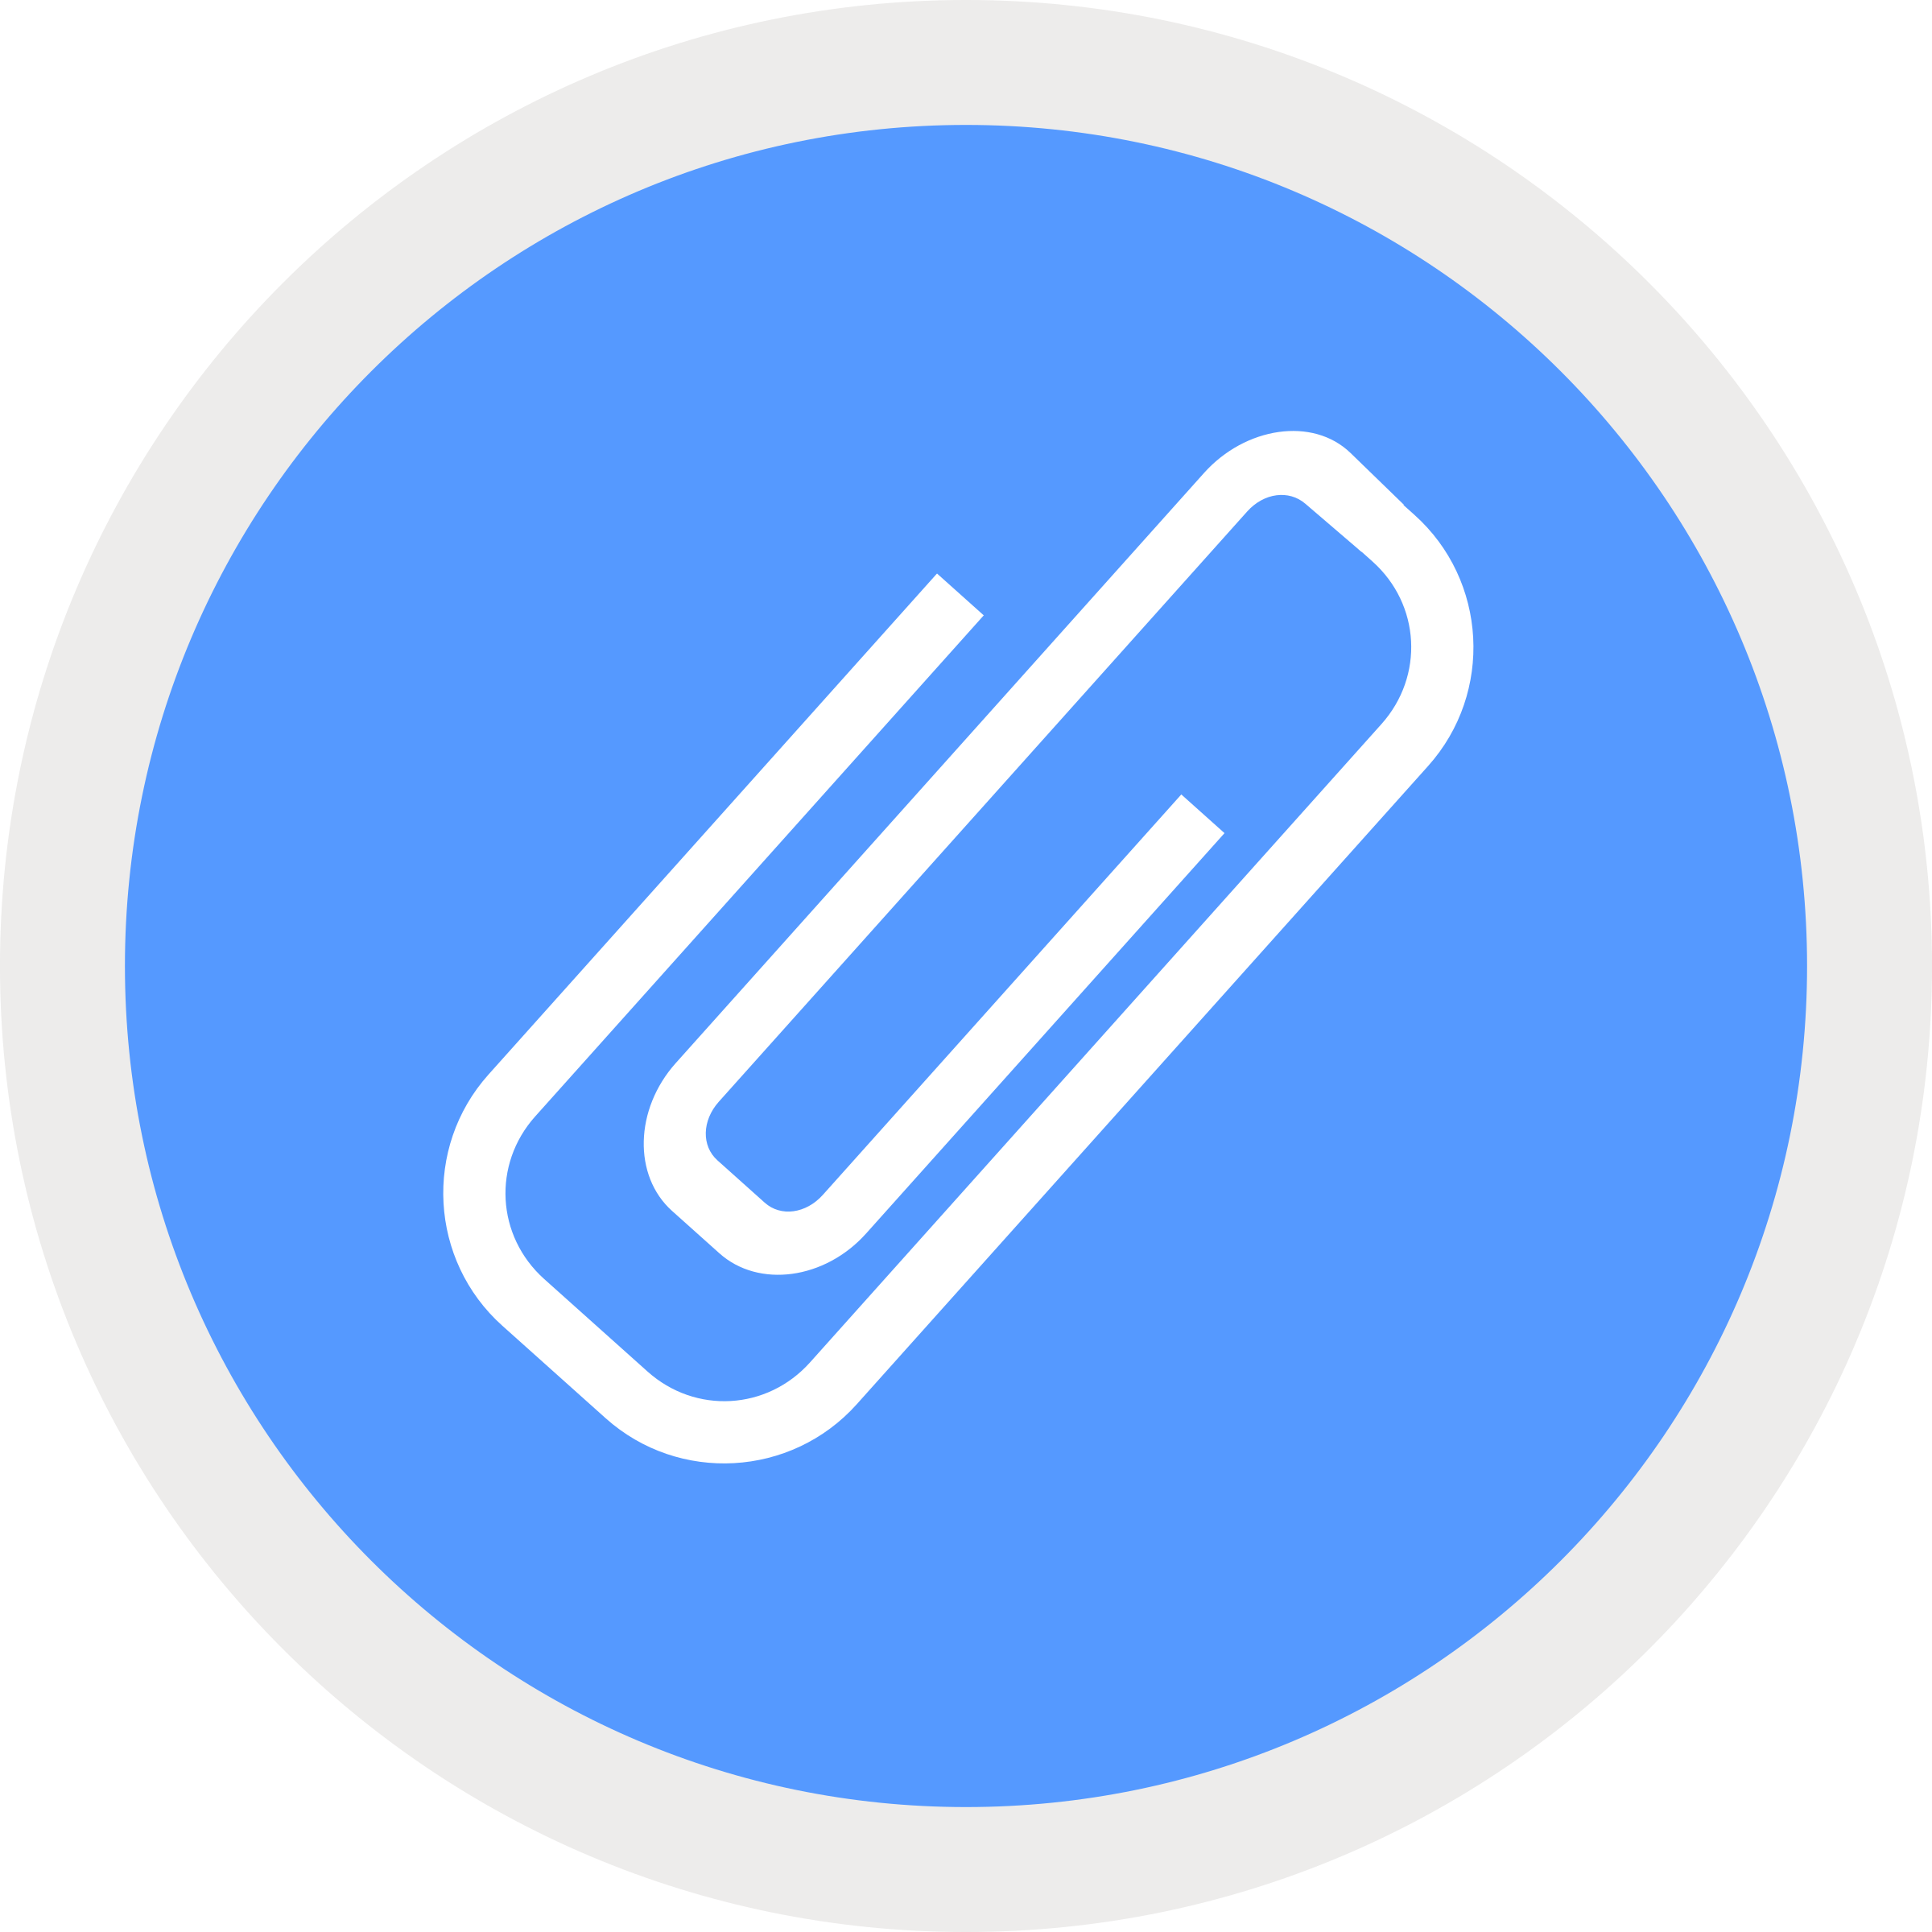 Paperclip Icon by isaiah658